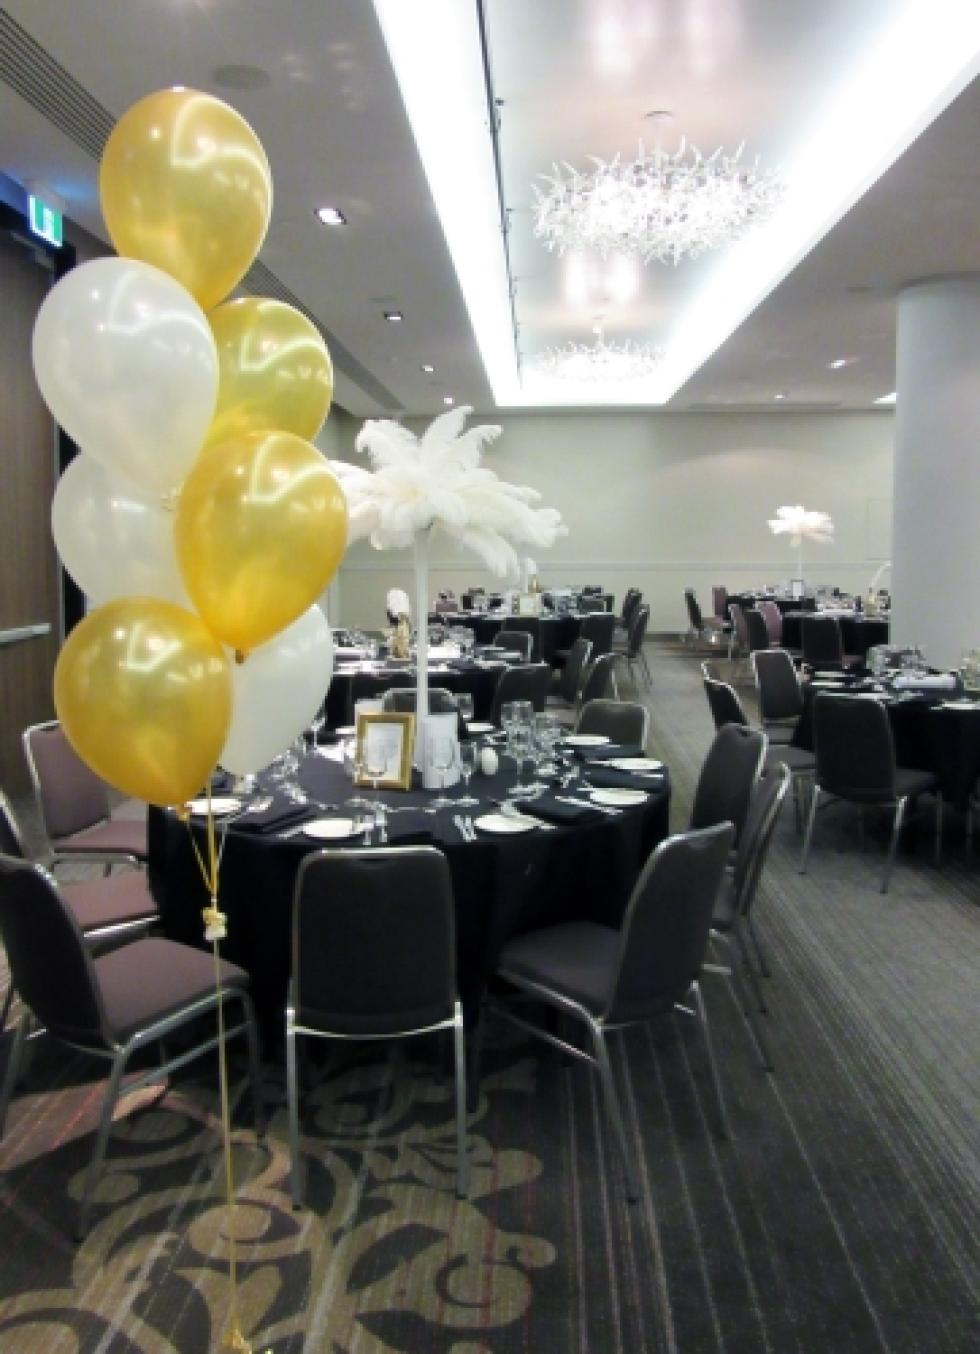 Hleium Latex Balloon Floor Arrangements | Gold & Pearl White Balloons Hilton Hotel Argyle Ballroom | www.CorporateRewards.com.au